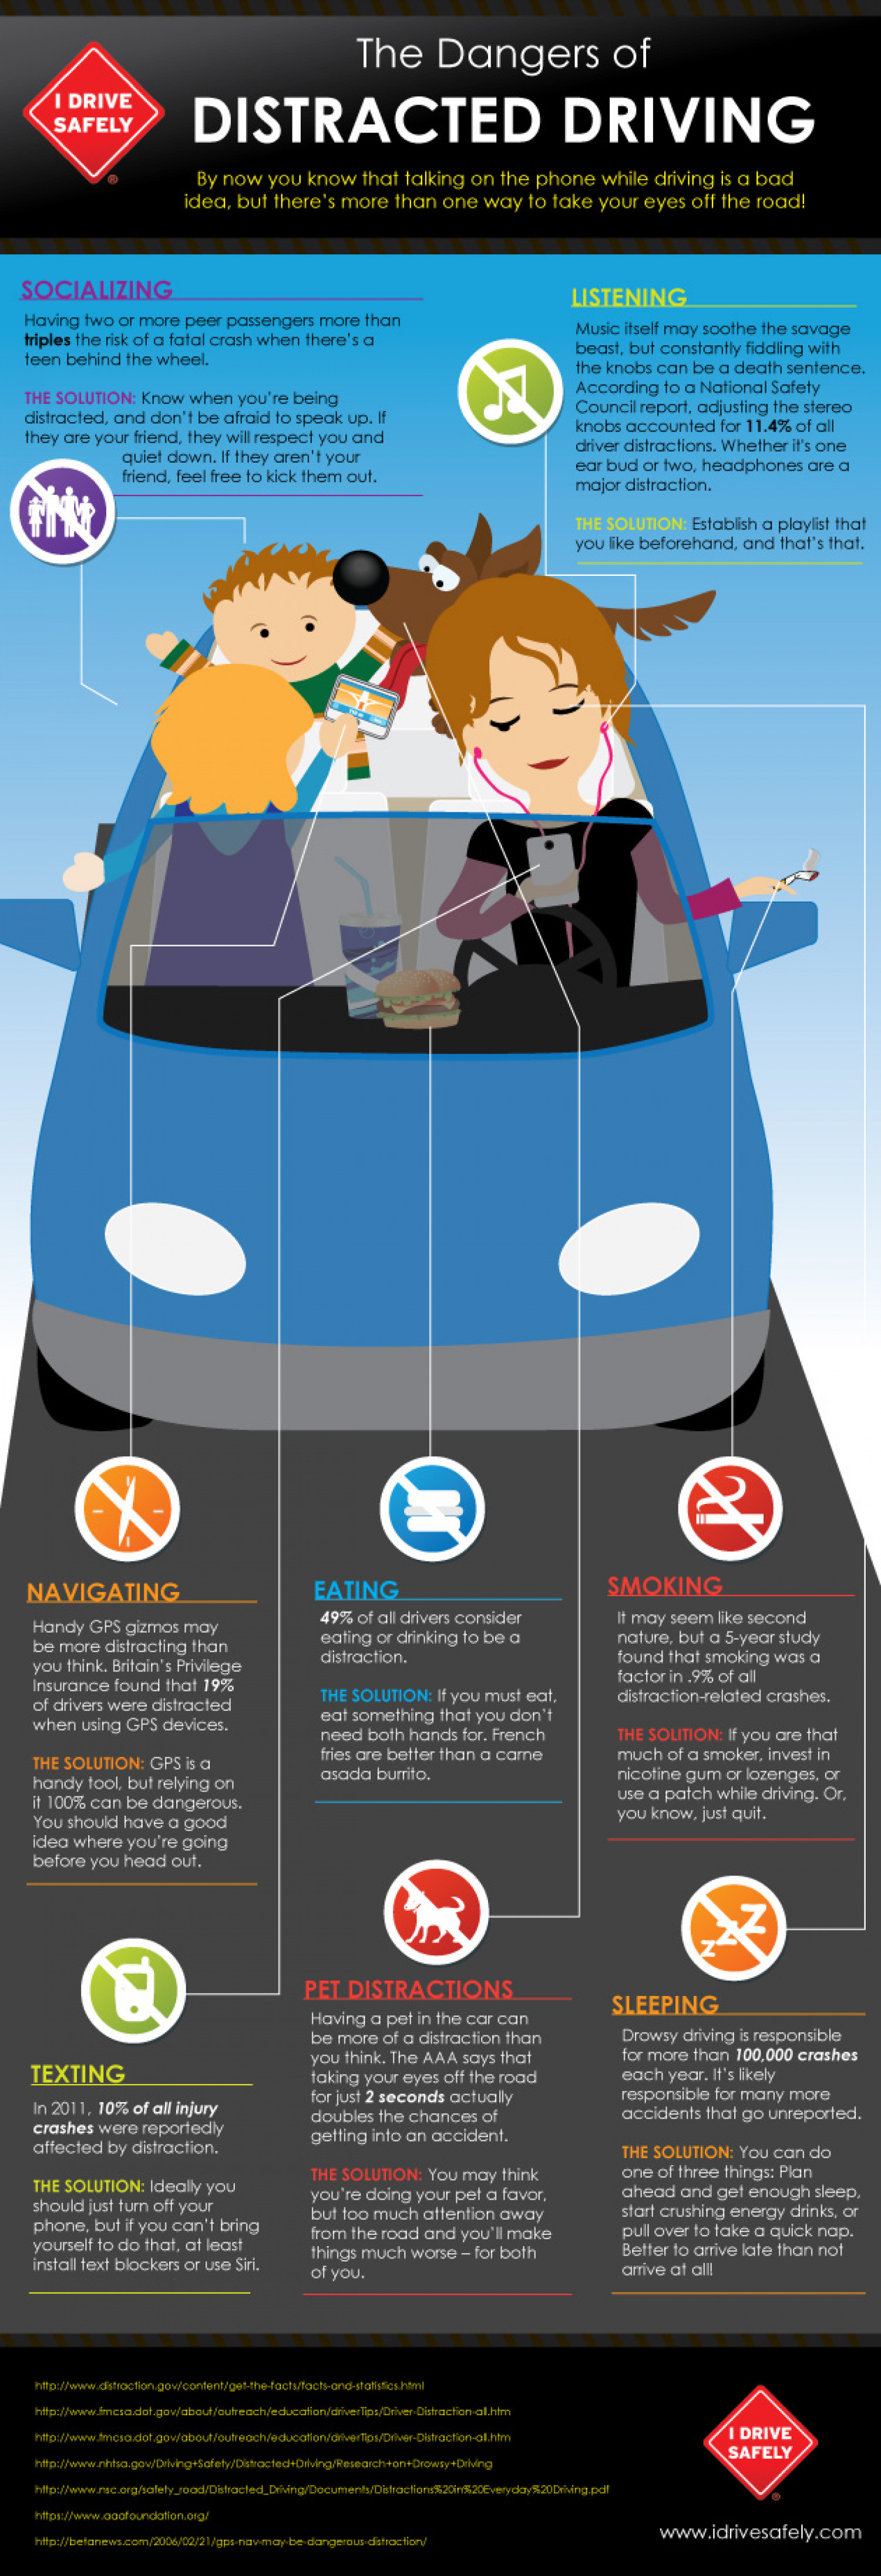 The Dangers of Distracted Driving Infographic